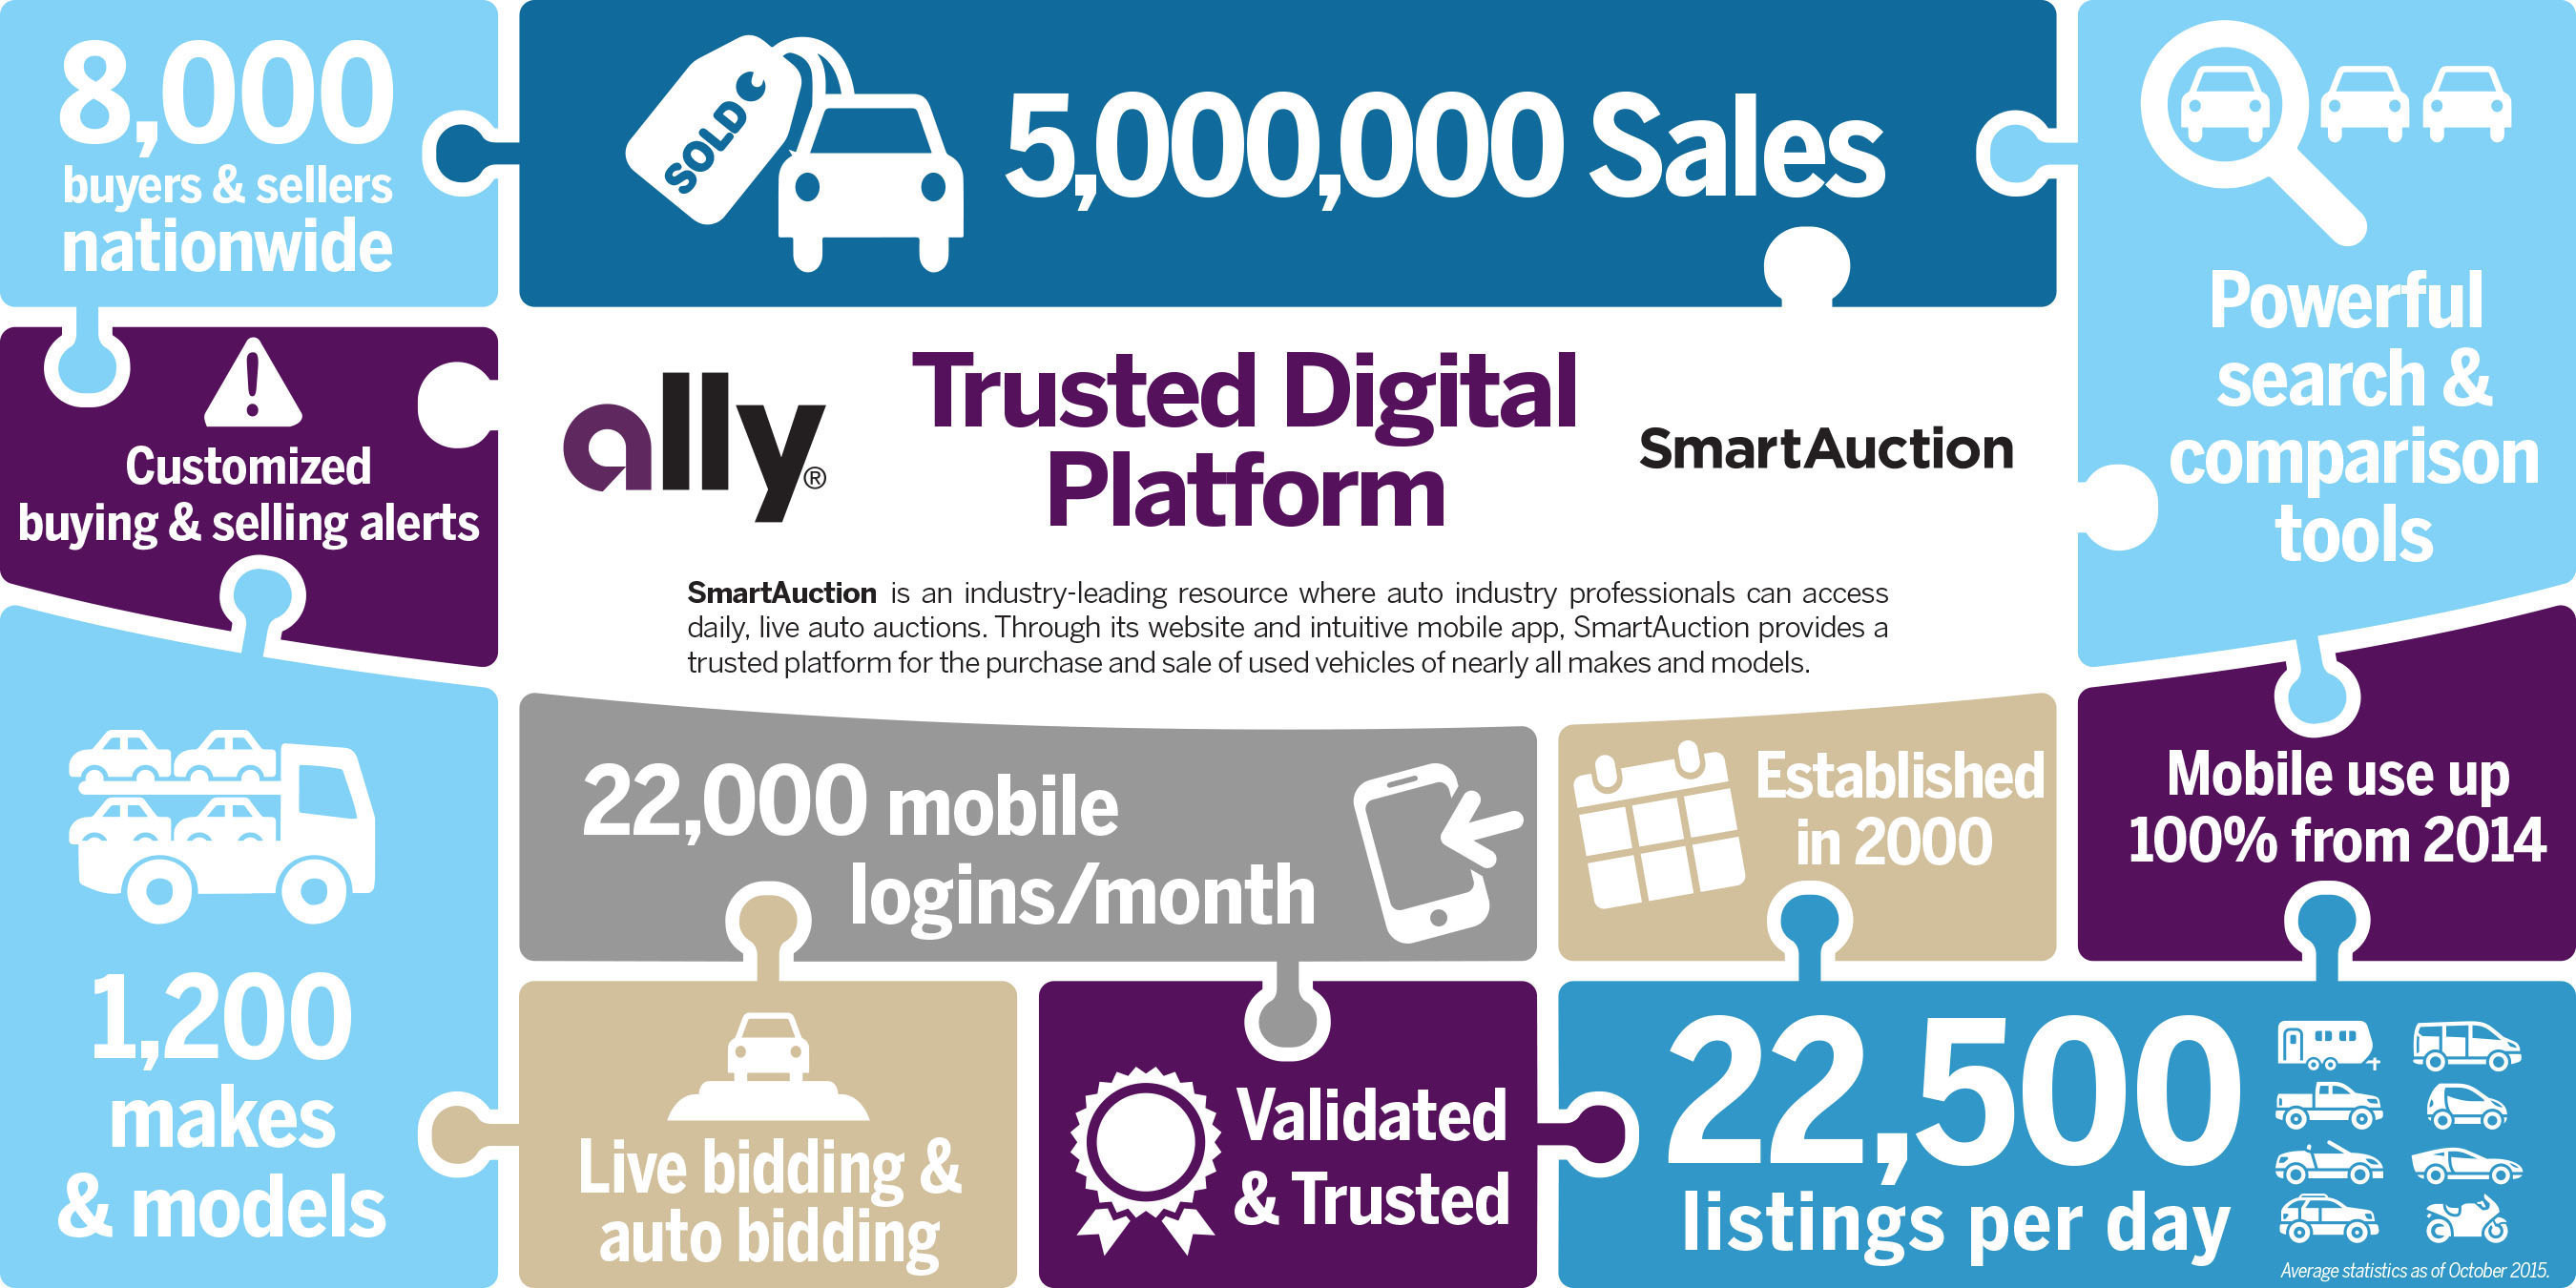 Ally's SmartAuction is an industry-leading digital platform that brings together 8,000 buyers and sellers ...